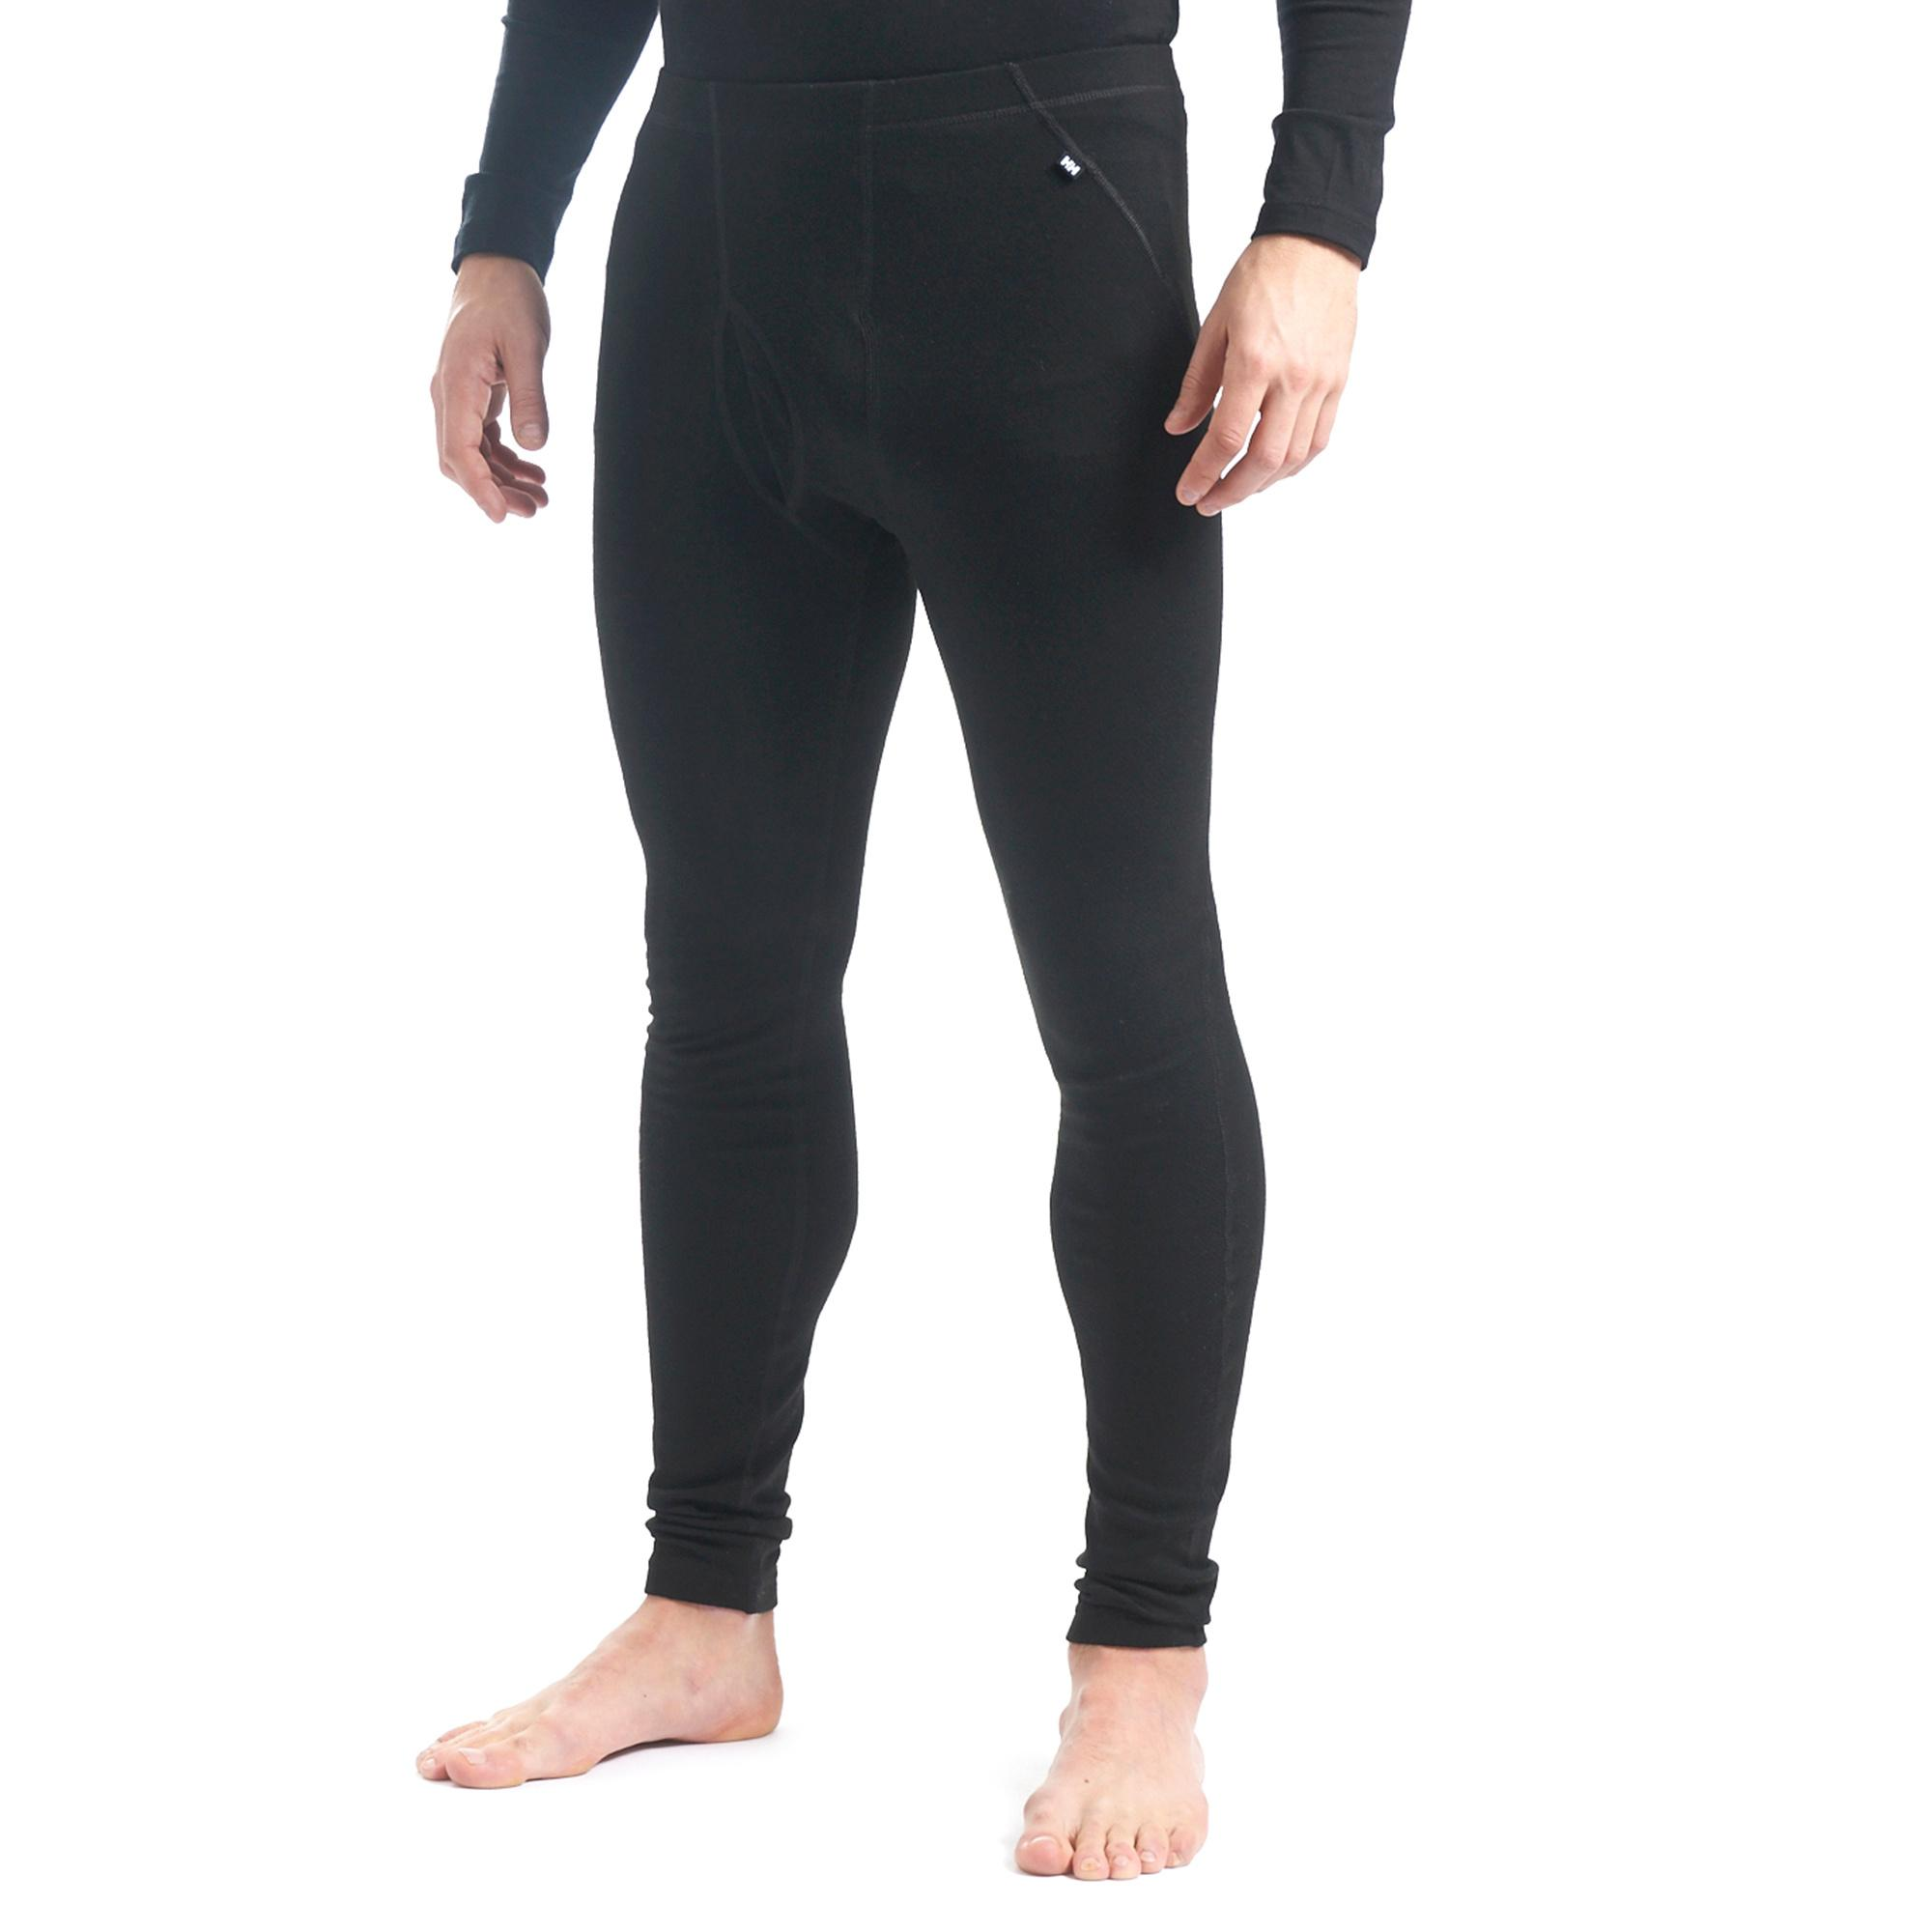 Helly Hansen Men's Warm Base Layer Bottoms, Black